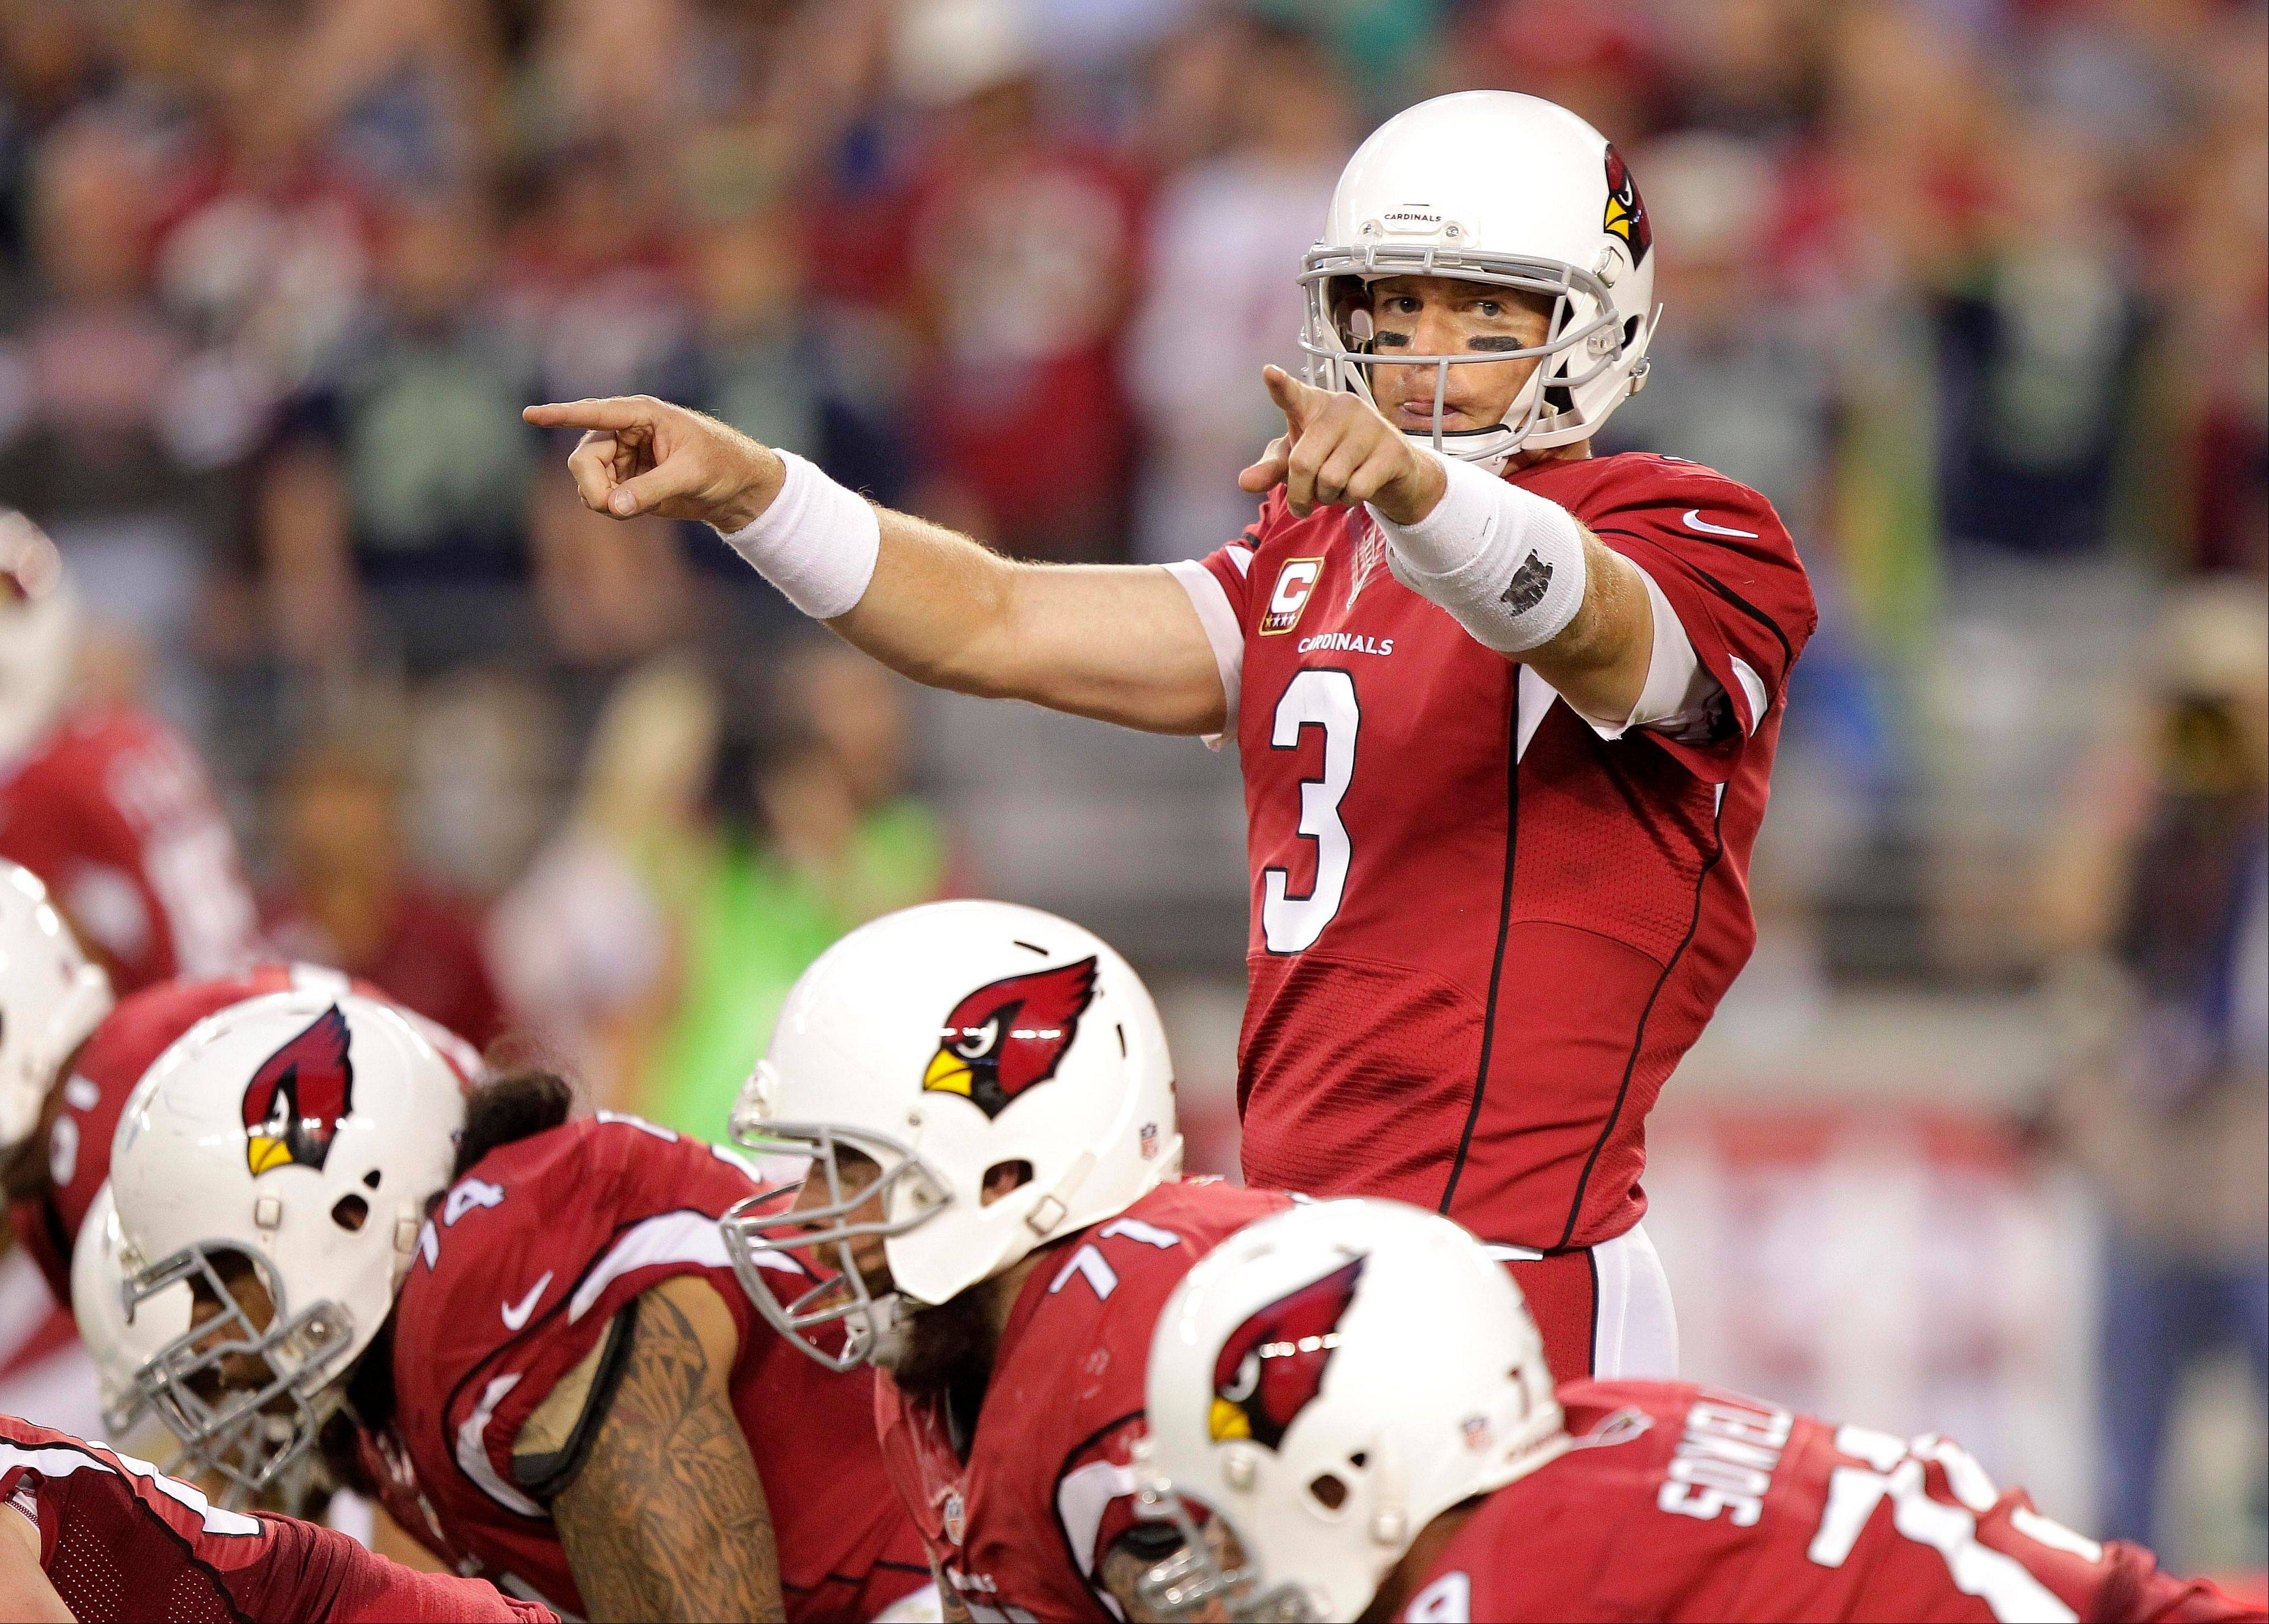 Could Cardinals quarterback Carson Palmer direct your fantasy football team to victory this week? John Dietz says it's a good bet as Arizona faces an inviting defense in Philadelphia.